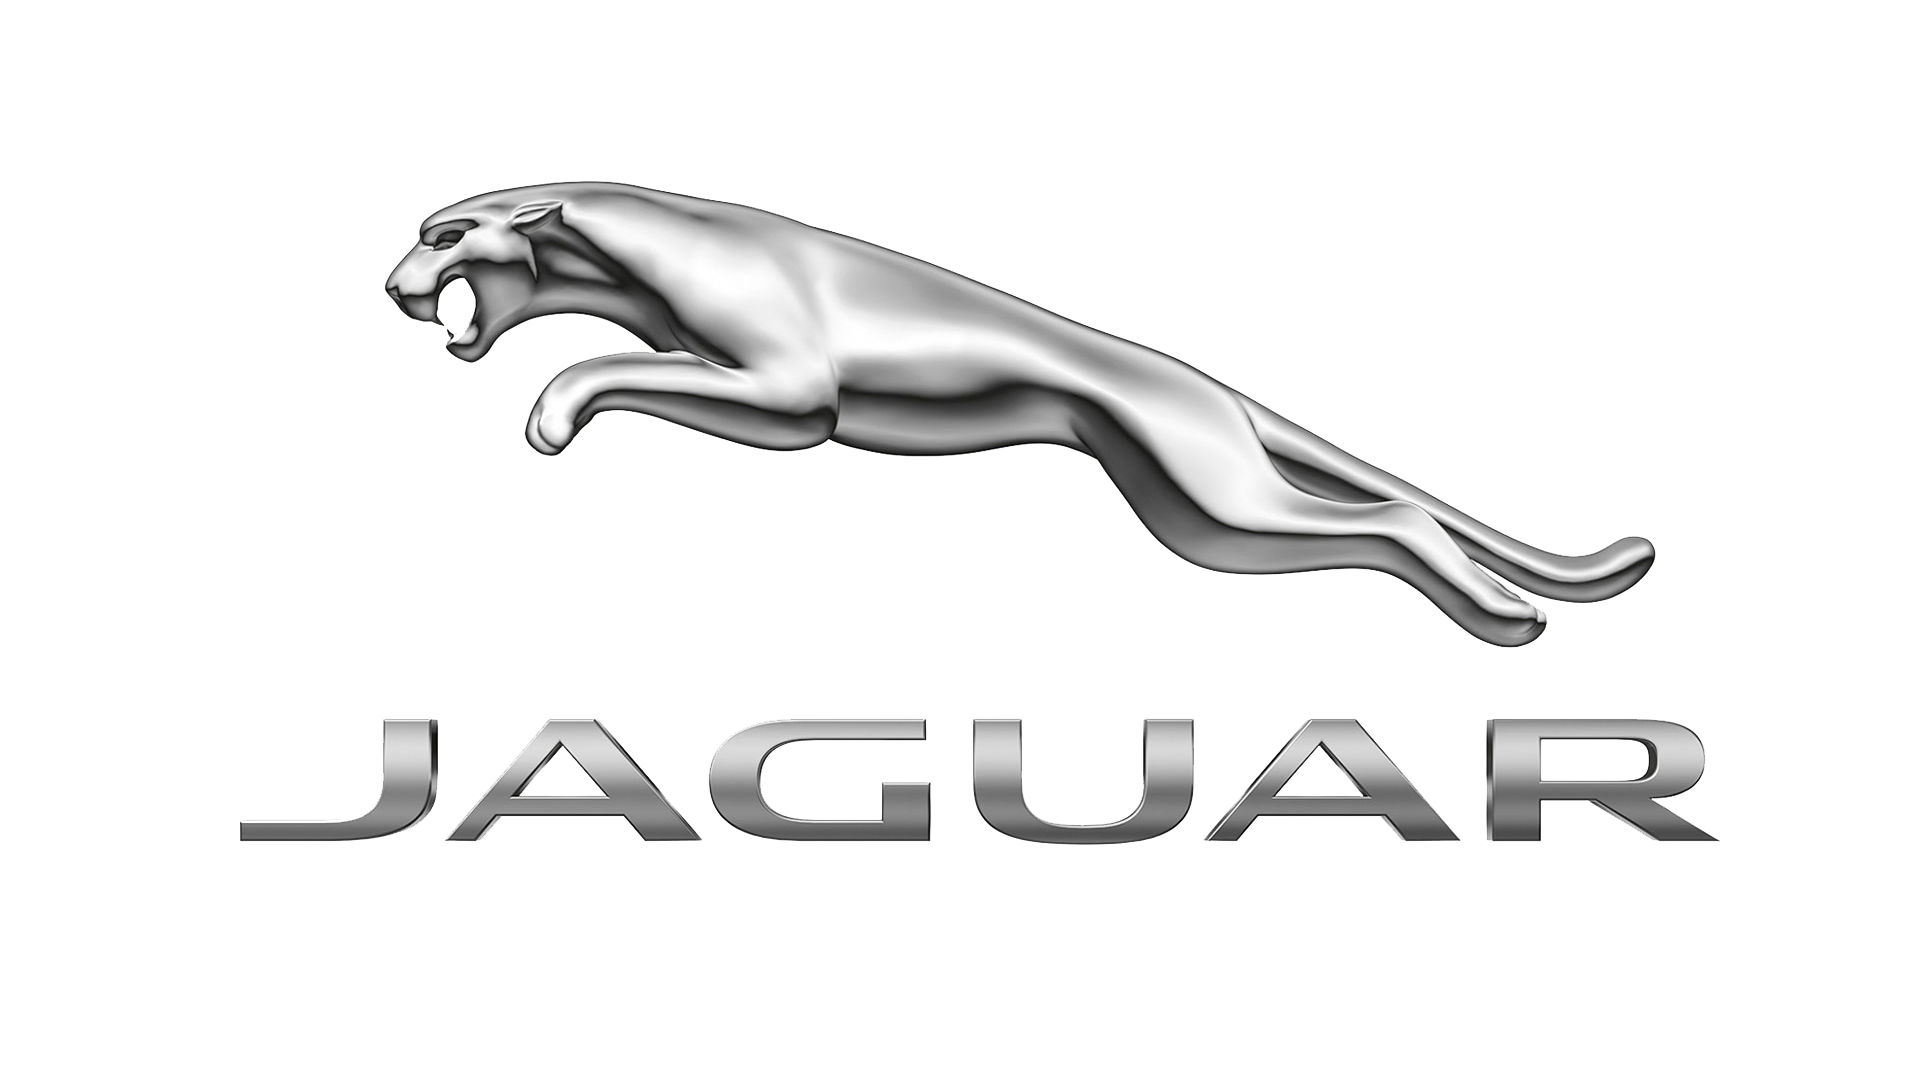 1920x1080 HD png - Jaguar PNG Black And White